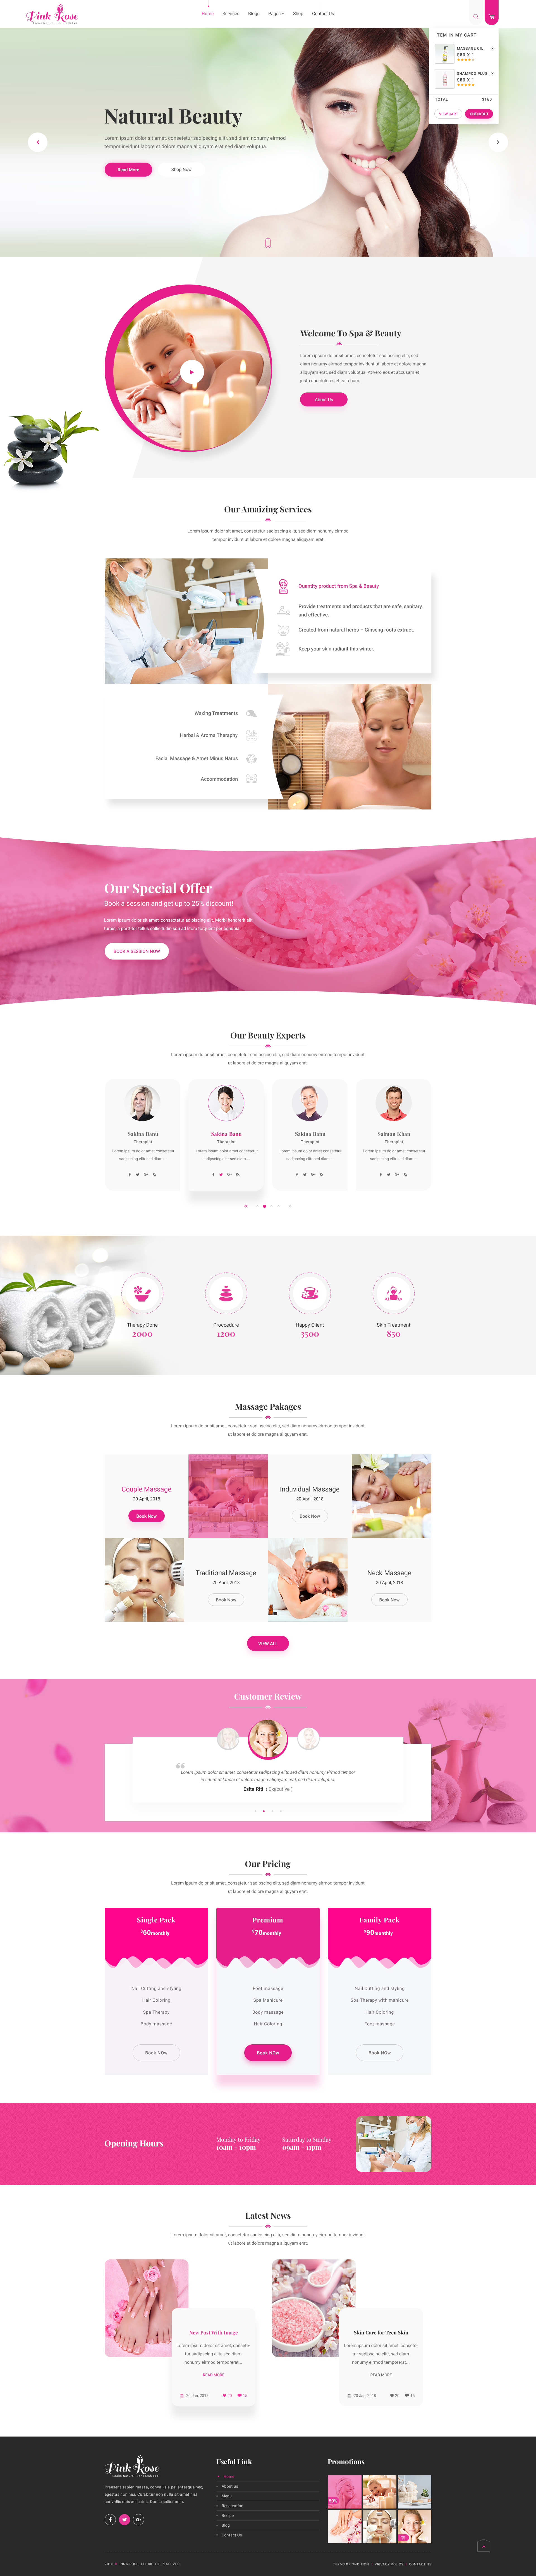 Pink rose unique web layout psd template by bootscore themeforest web layout psd template psd templates 01previewimageg 02homeoneg maxwellsz